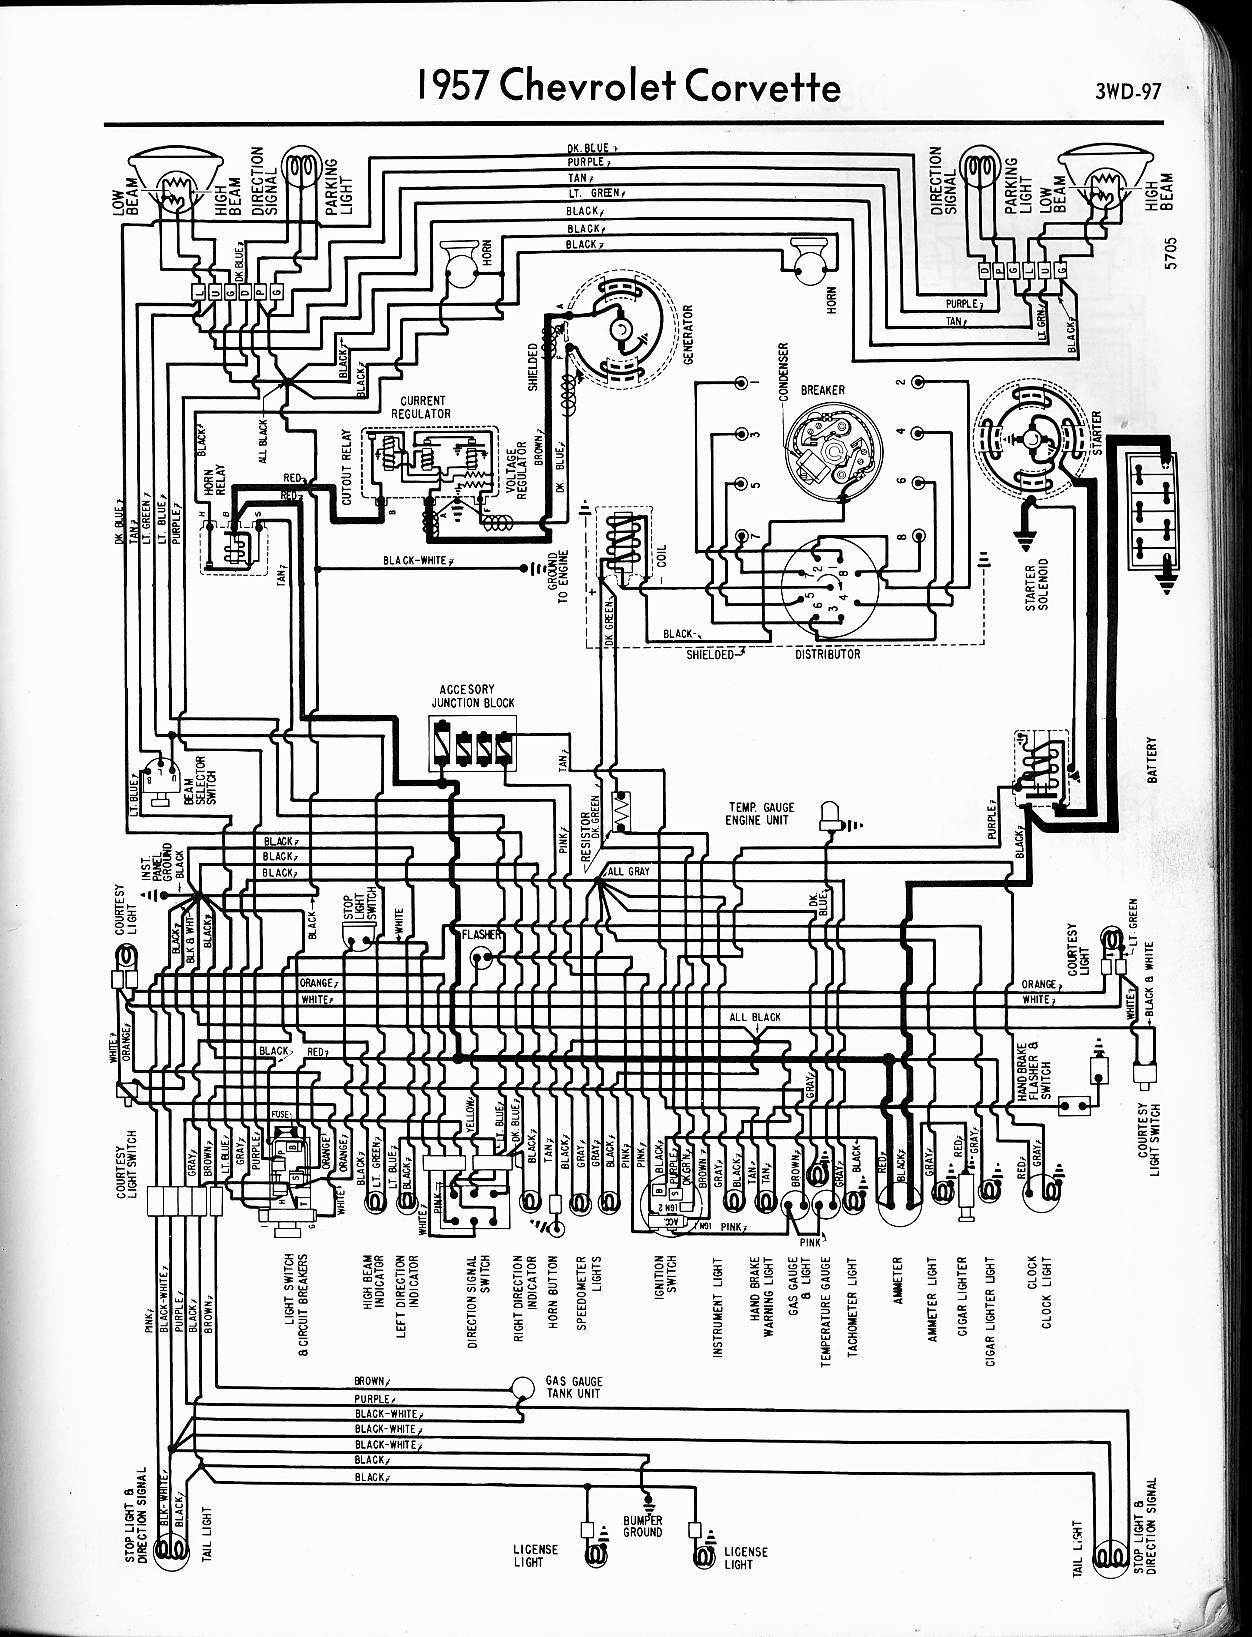 MWireChev57_3WD 097 57 65 chevy wiring diagrams 1957 chevrolet wiring diagram at readyjetset.co